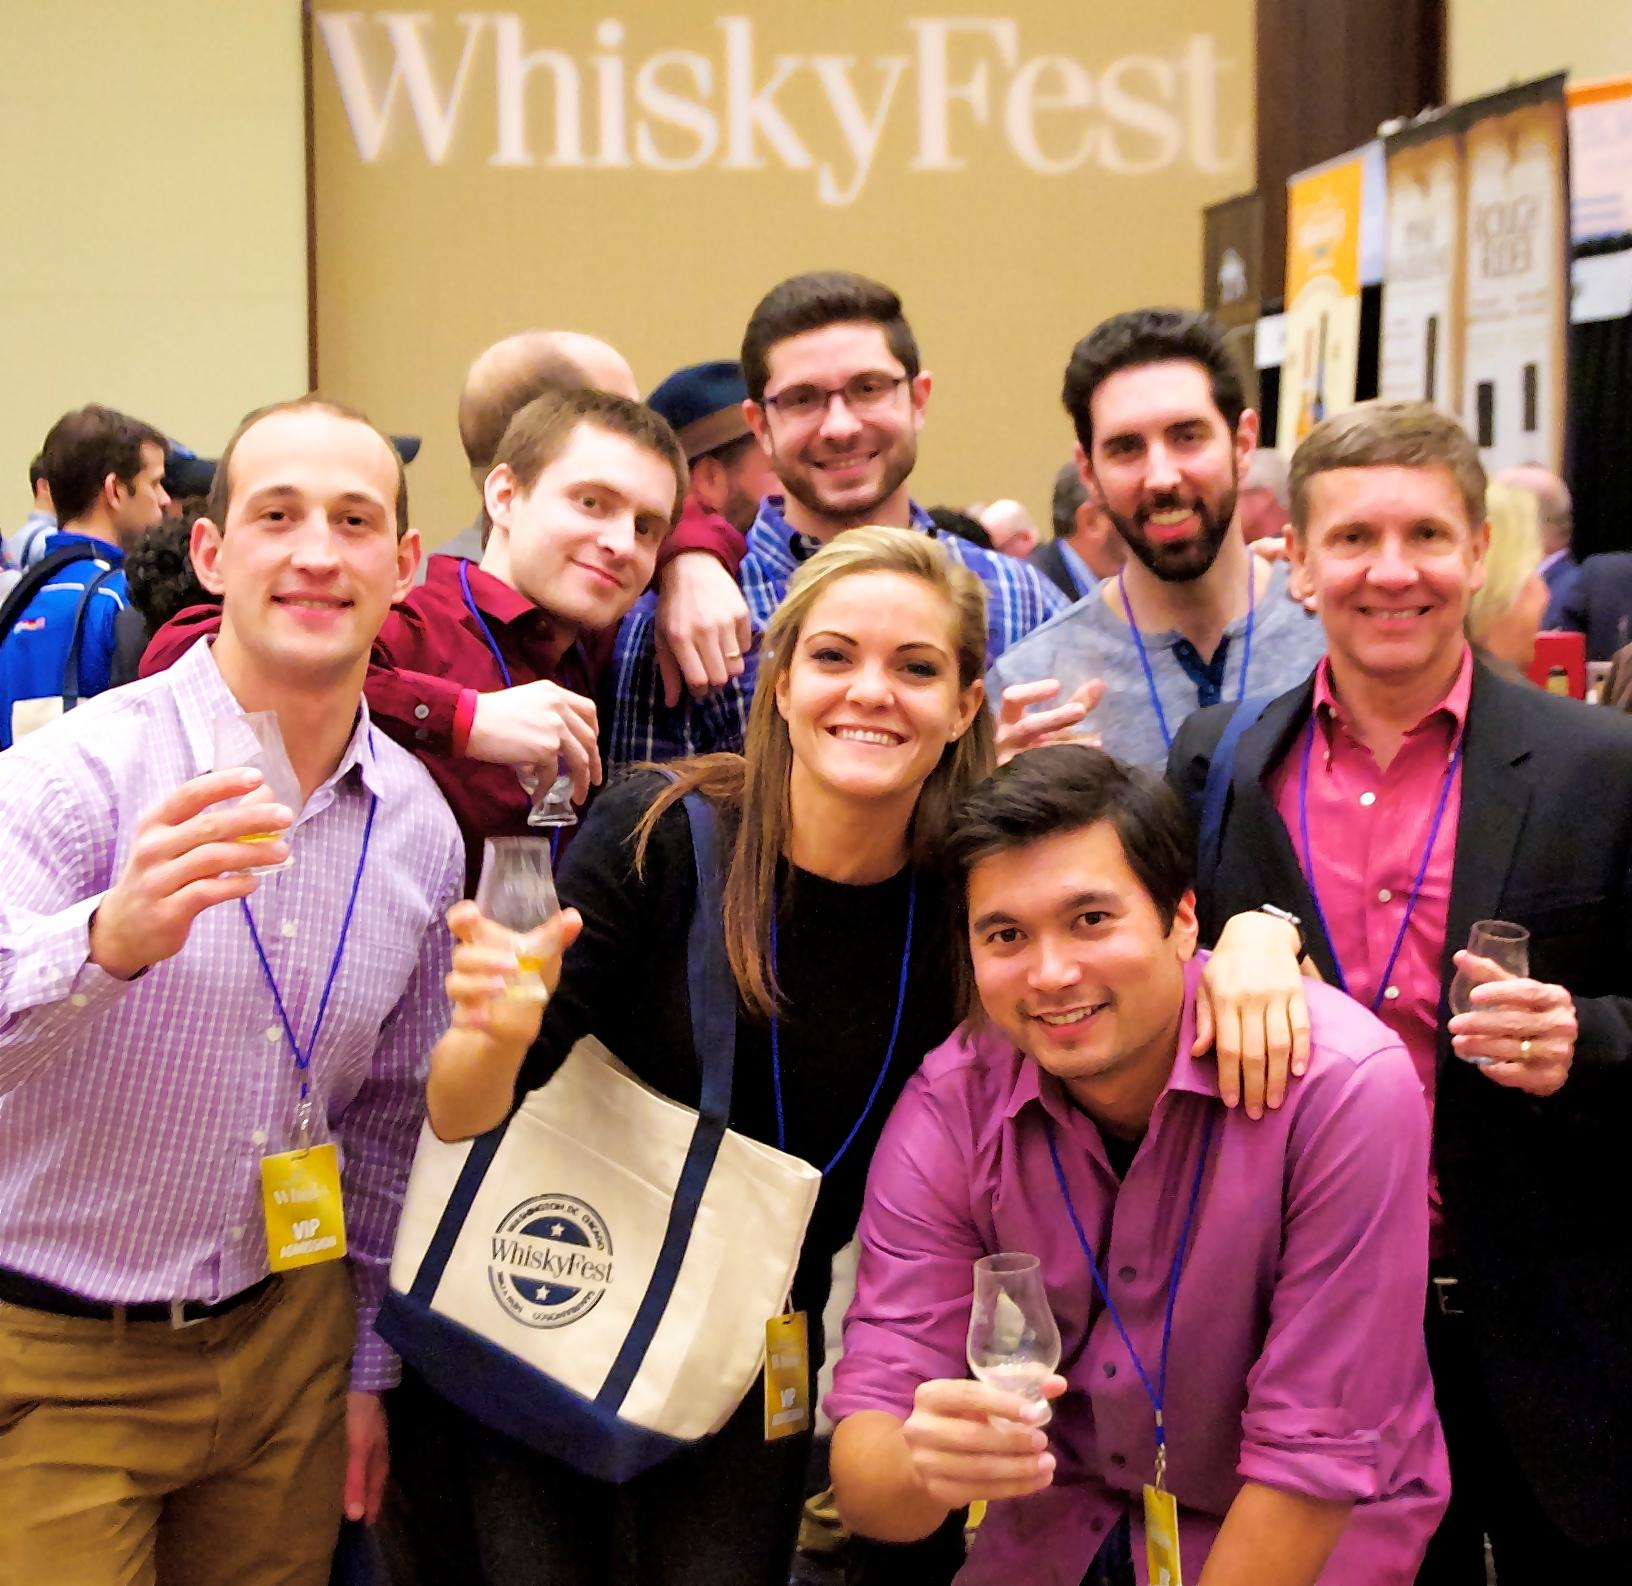 Seminars will be offered on topics ranging from Solera system Blade & Bow Bourbon uses at the iconic Stitzel-Weller Distillery to why Glenmorangie ages its single malt whisky in American oak. (Image: Courtesy WhiskeyFest)